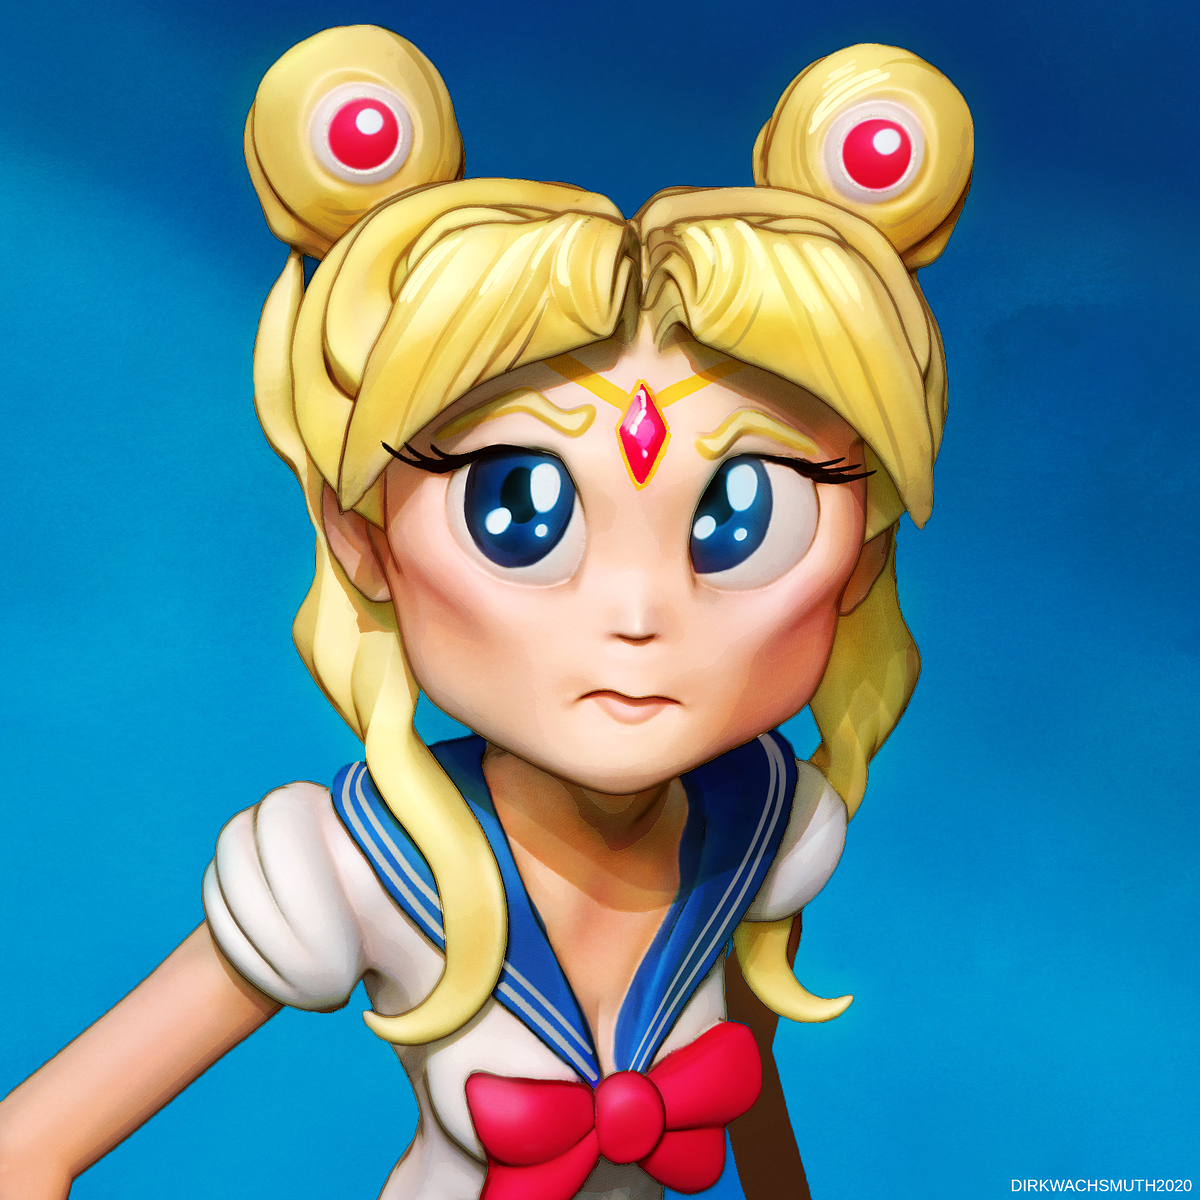 Sailormoon_compo_comicstyle_4web